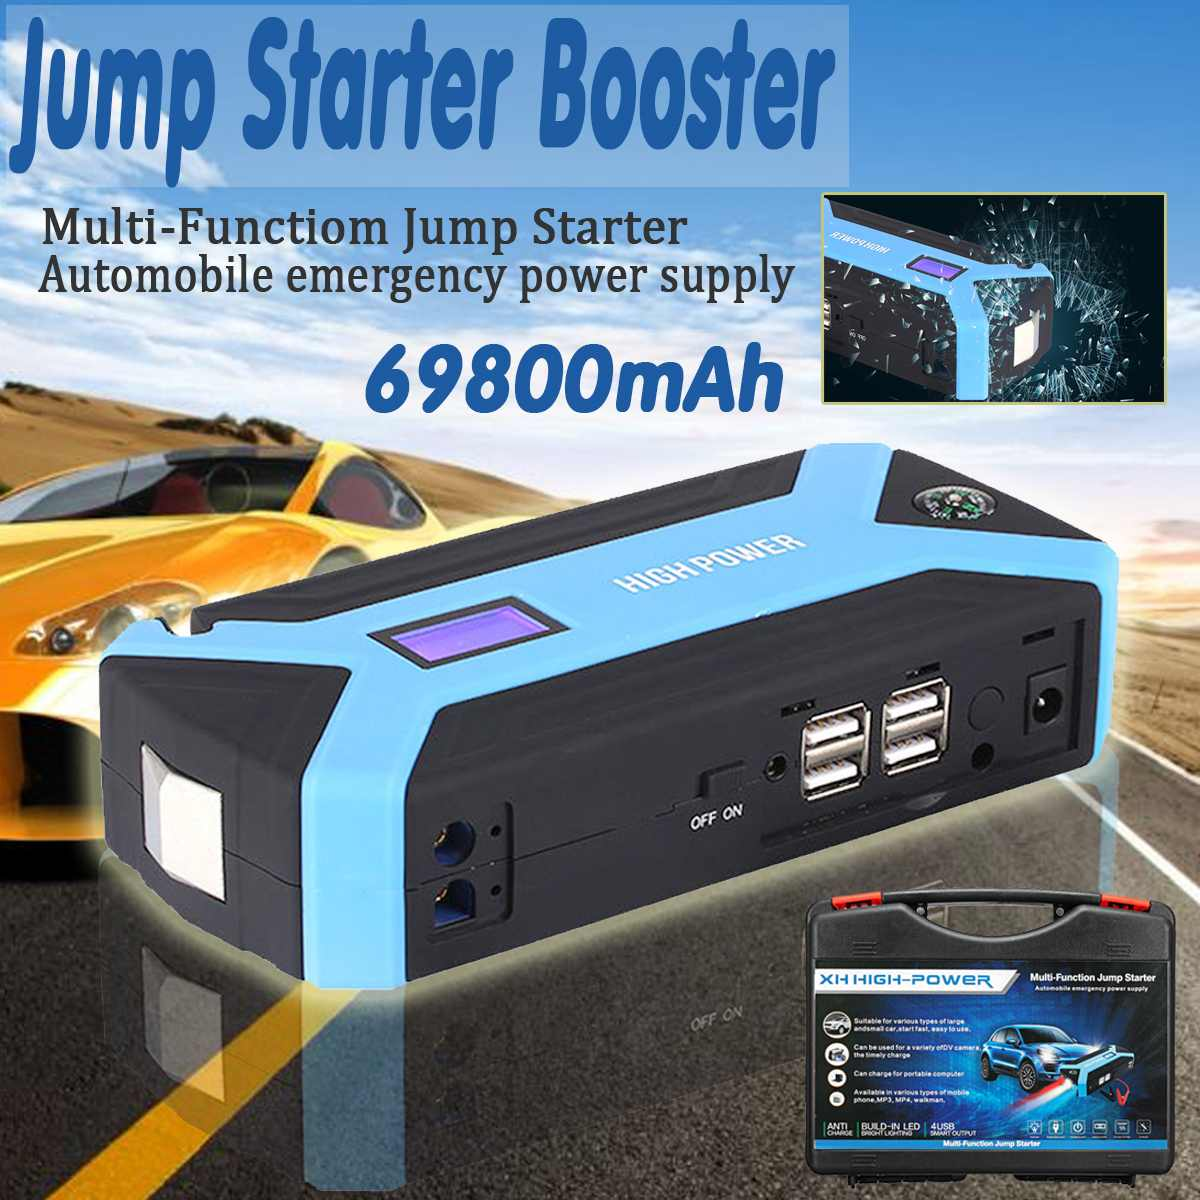 Multifunction Jump Starter 69800mAh 12V 4USB 600A Portable Car Battery Booster Charger Booster Power Bank Starting DeviceMultifunction Jump Starter 69800mAh 12V 4USB 600A Portable Car Battery Booster Charger Booster Power Bank Starting Device